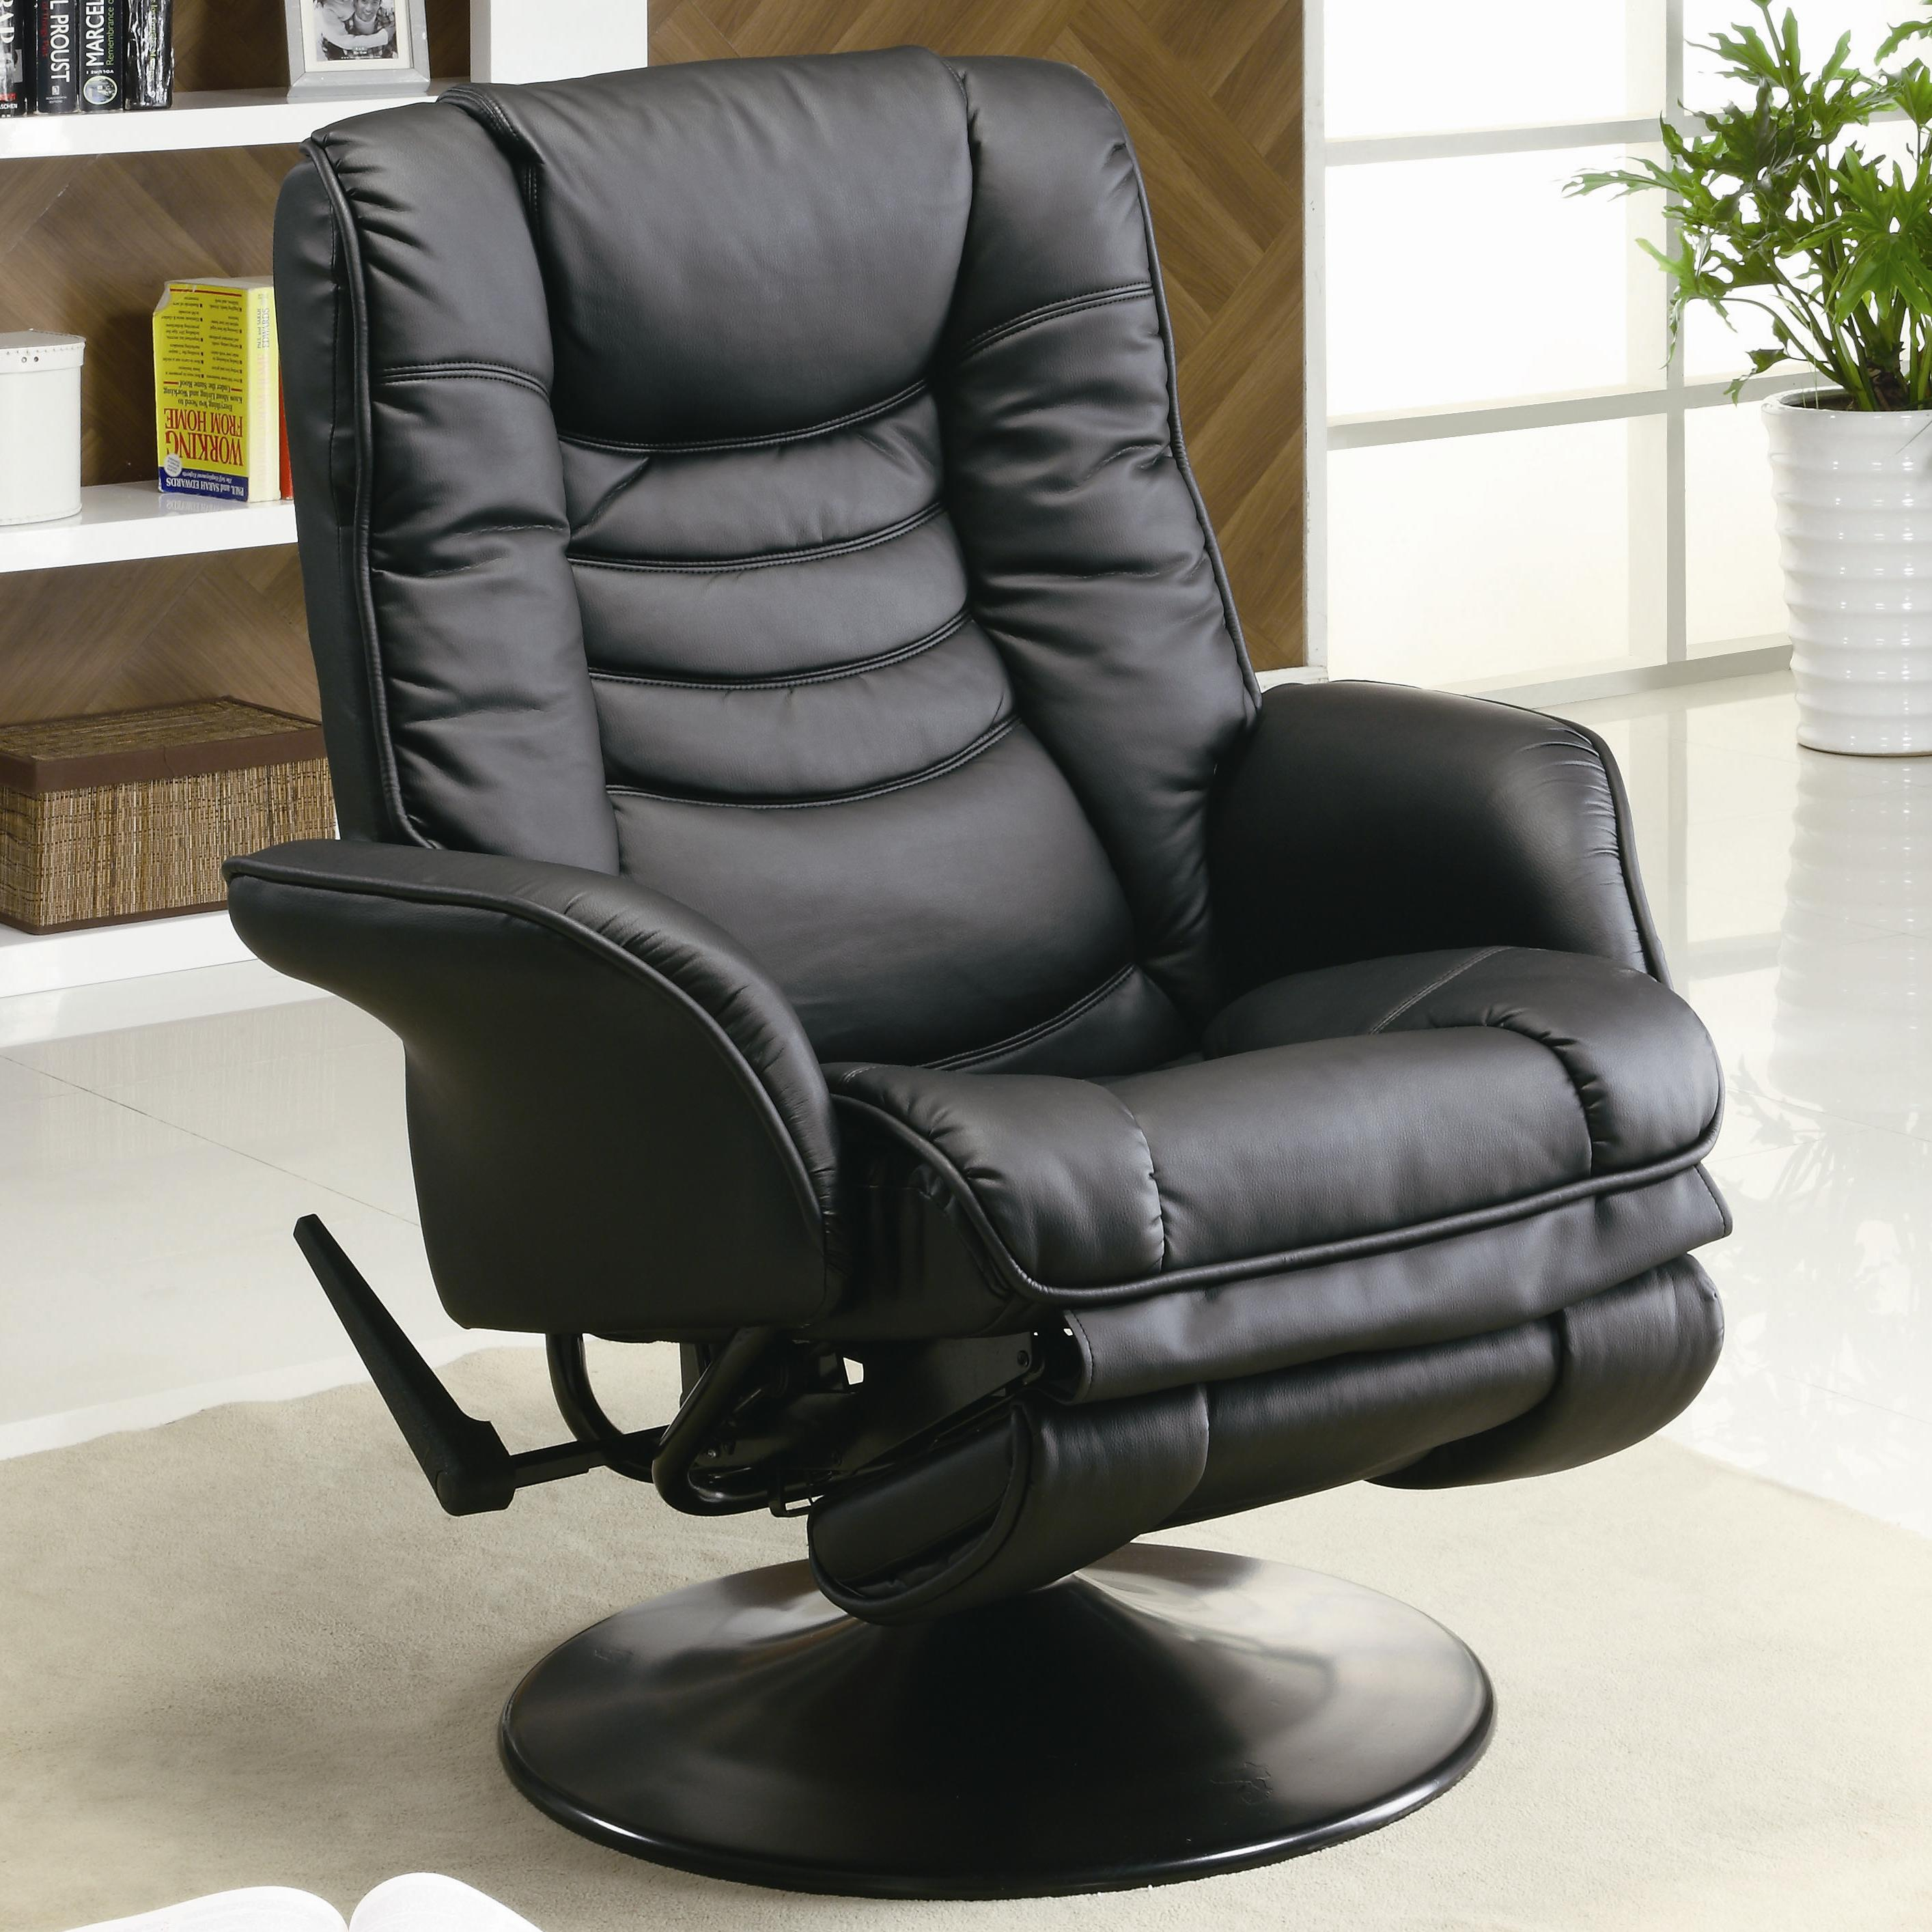 Chair Leather Reclining Swivel Recliners Casual Leatherette Swivel Recliner By Coaster At Northeast Factory Direct